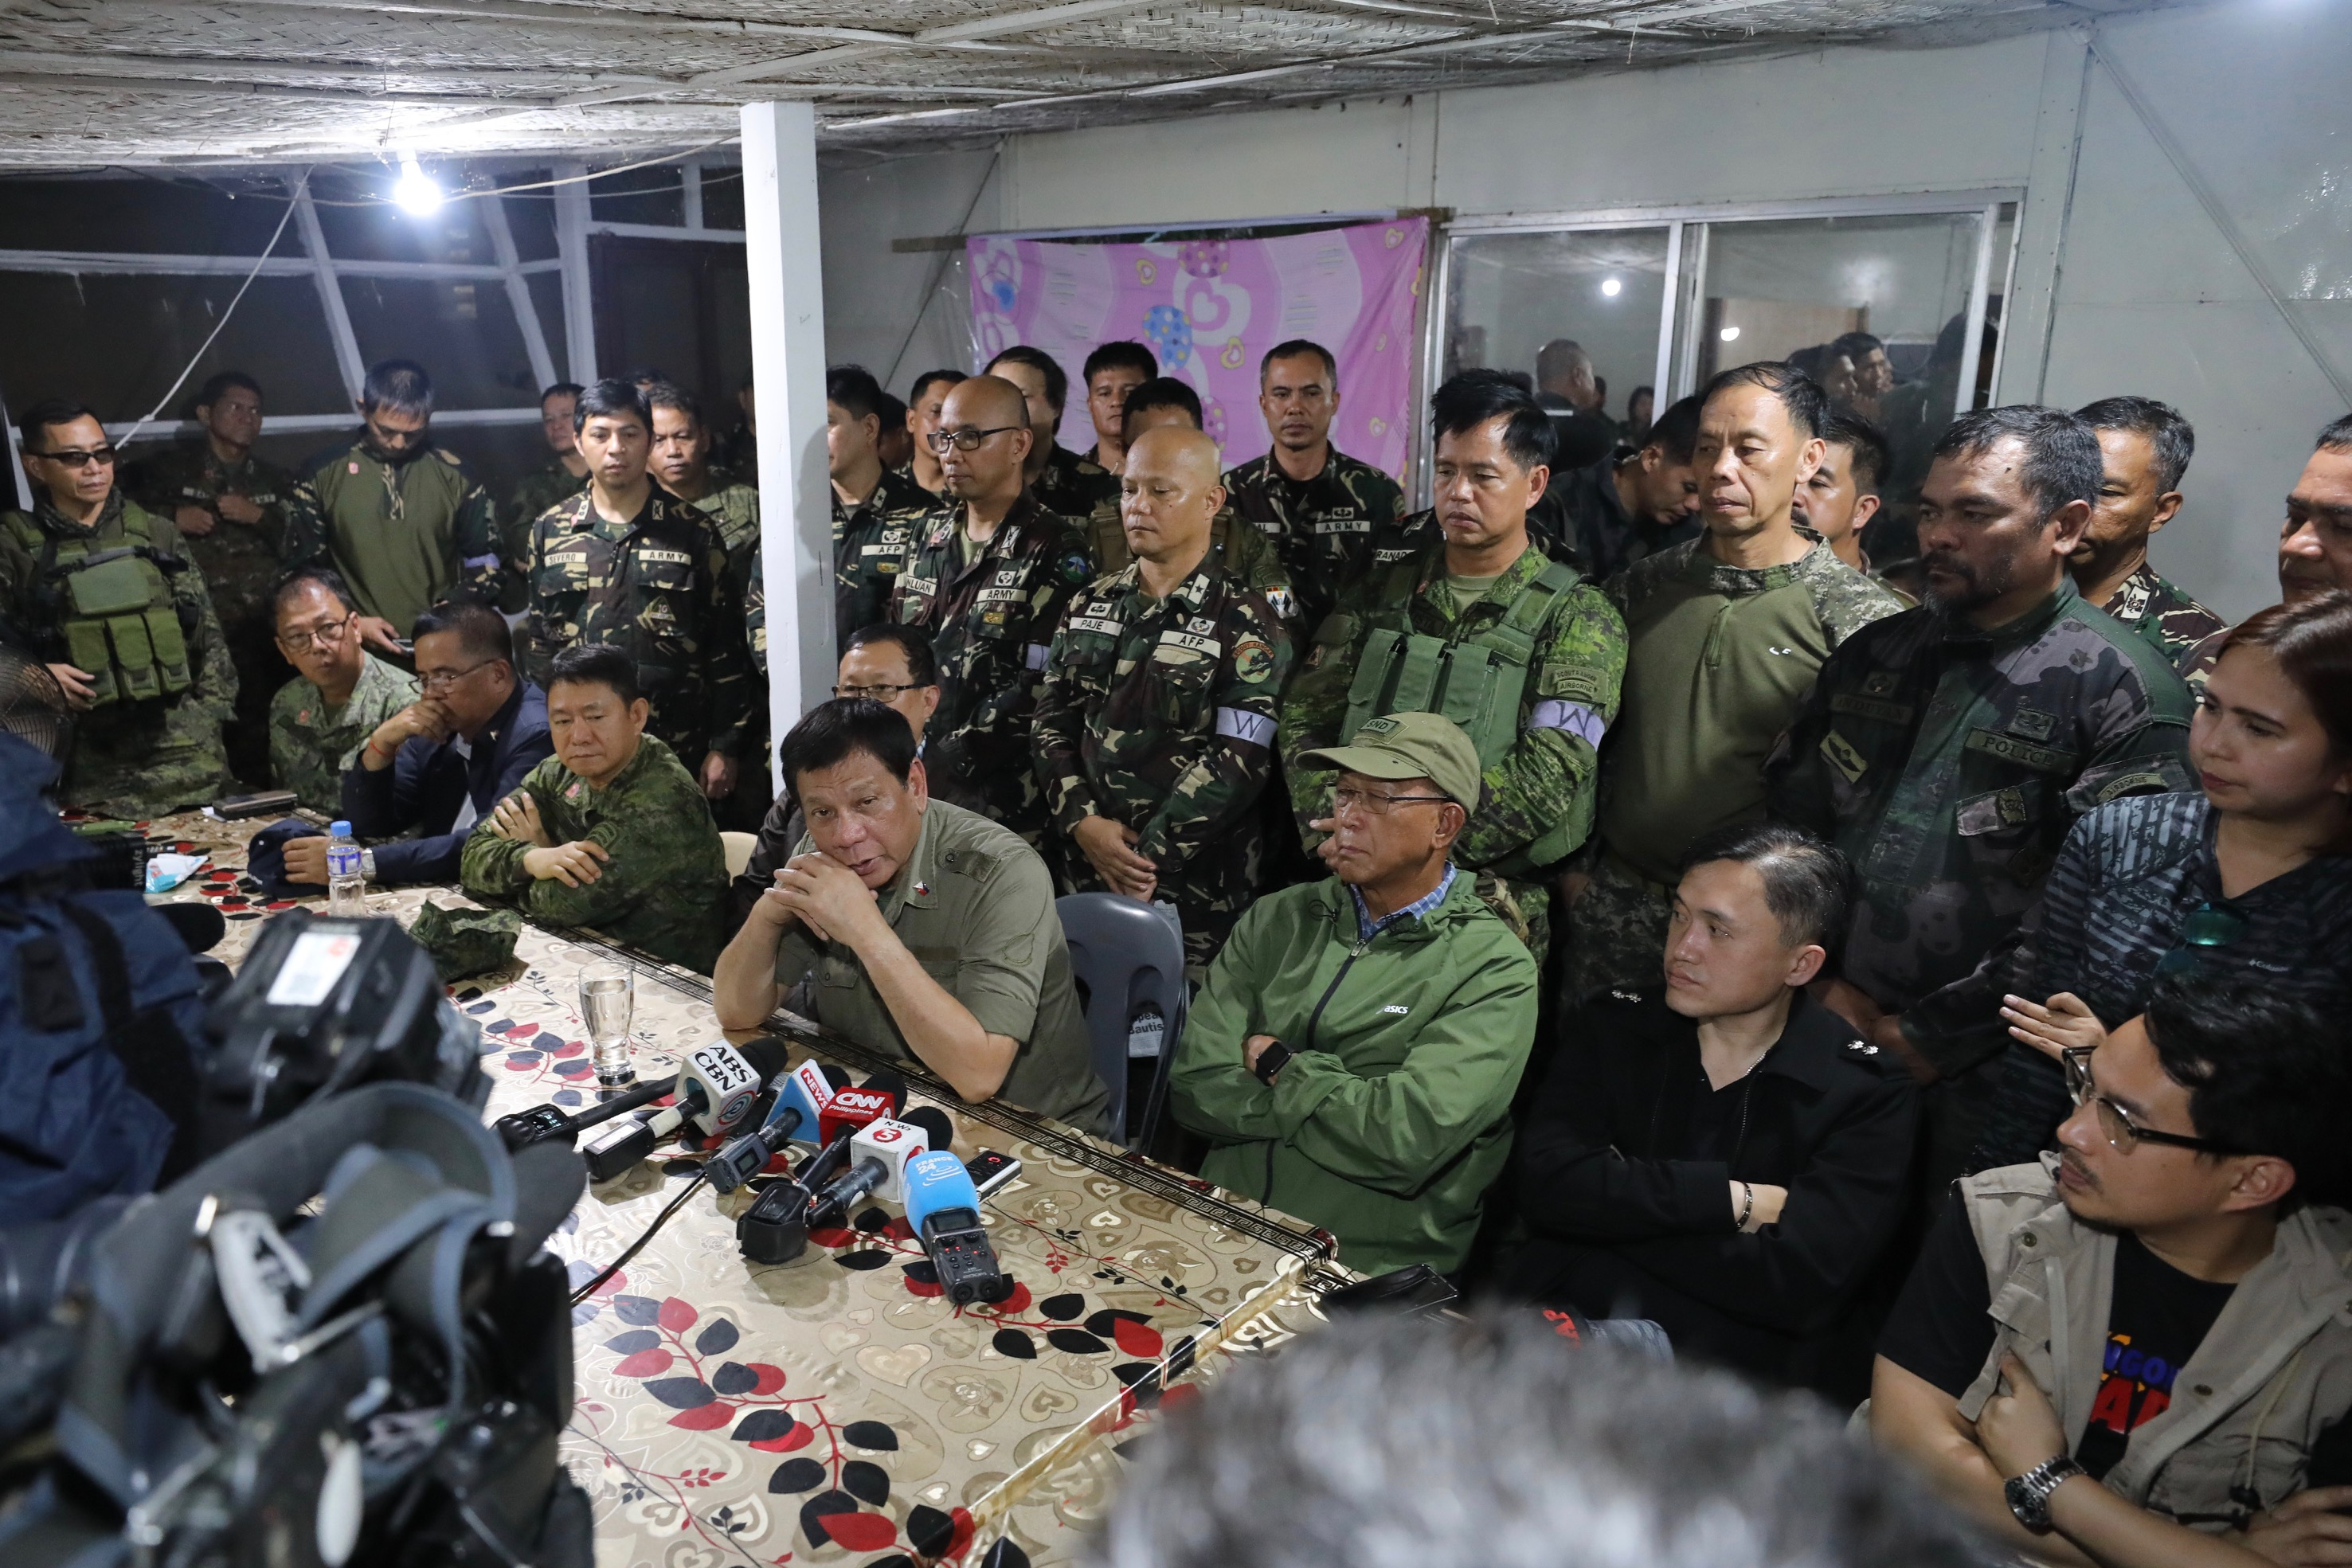 Duterte On Nationwide Martial Law: All Options On The Table